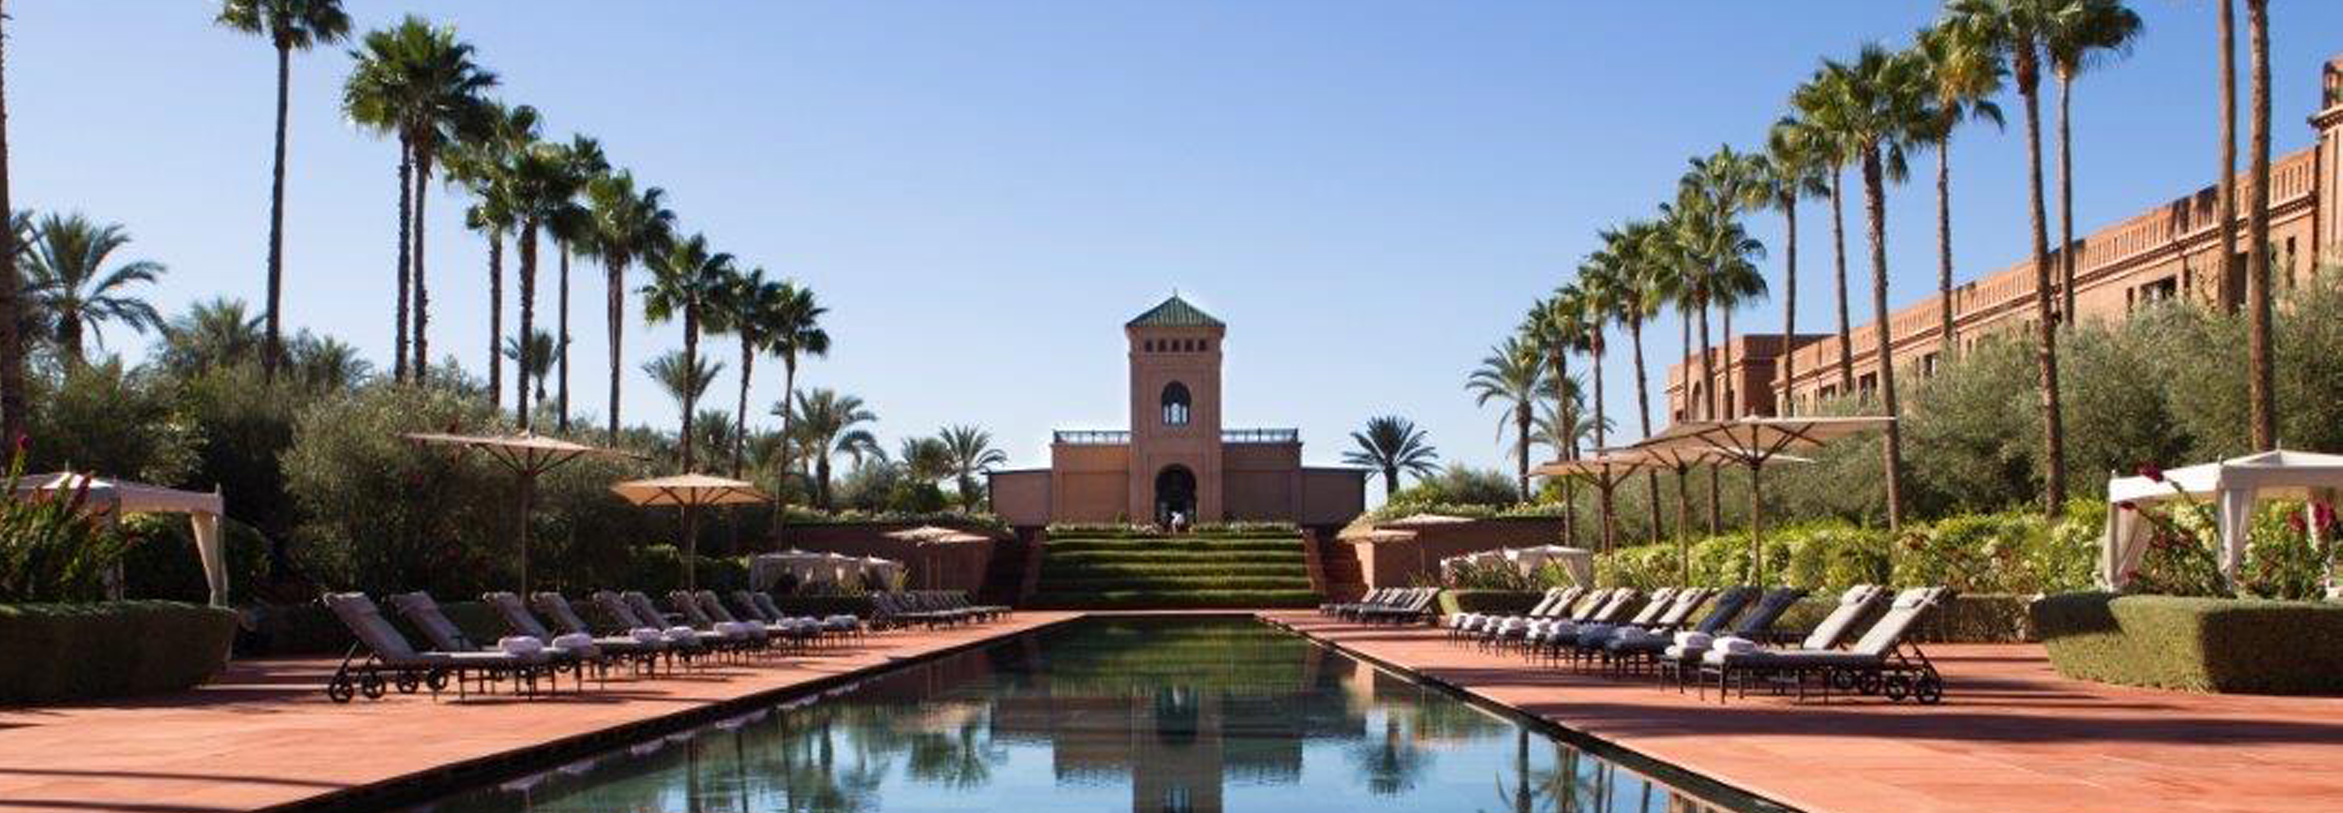 Selman Marrakech - Marrakesh Luxury Hotel - Ker & Downey